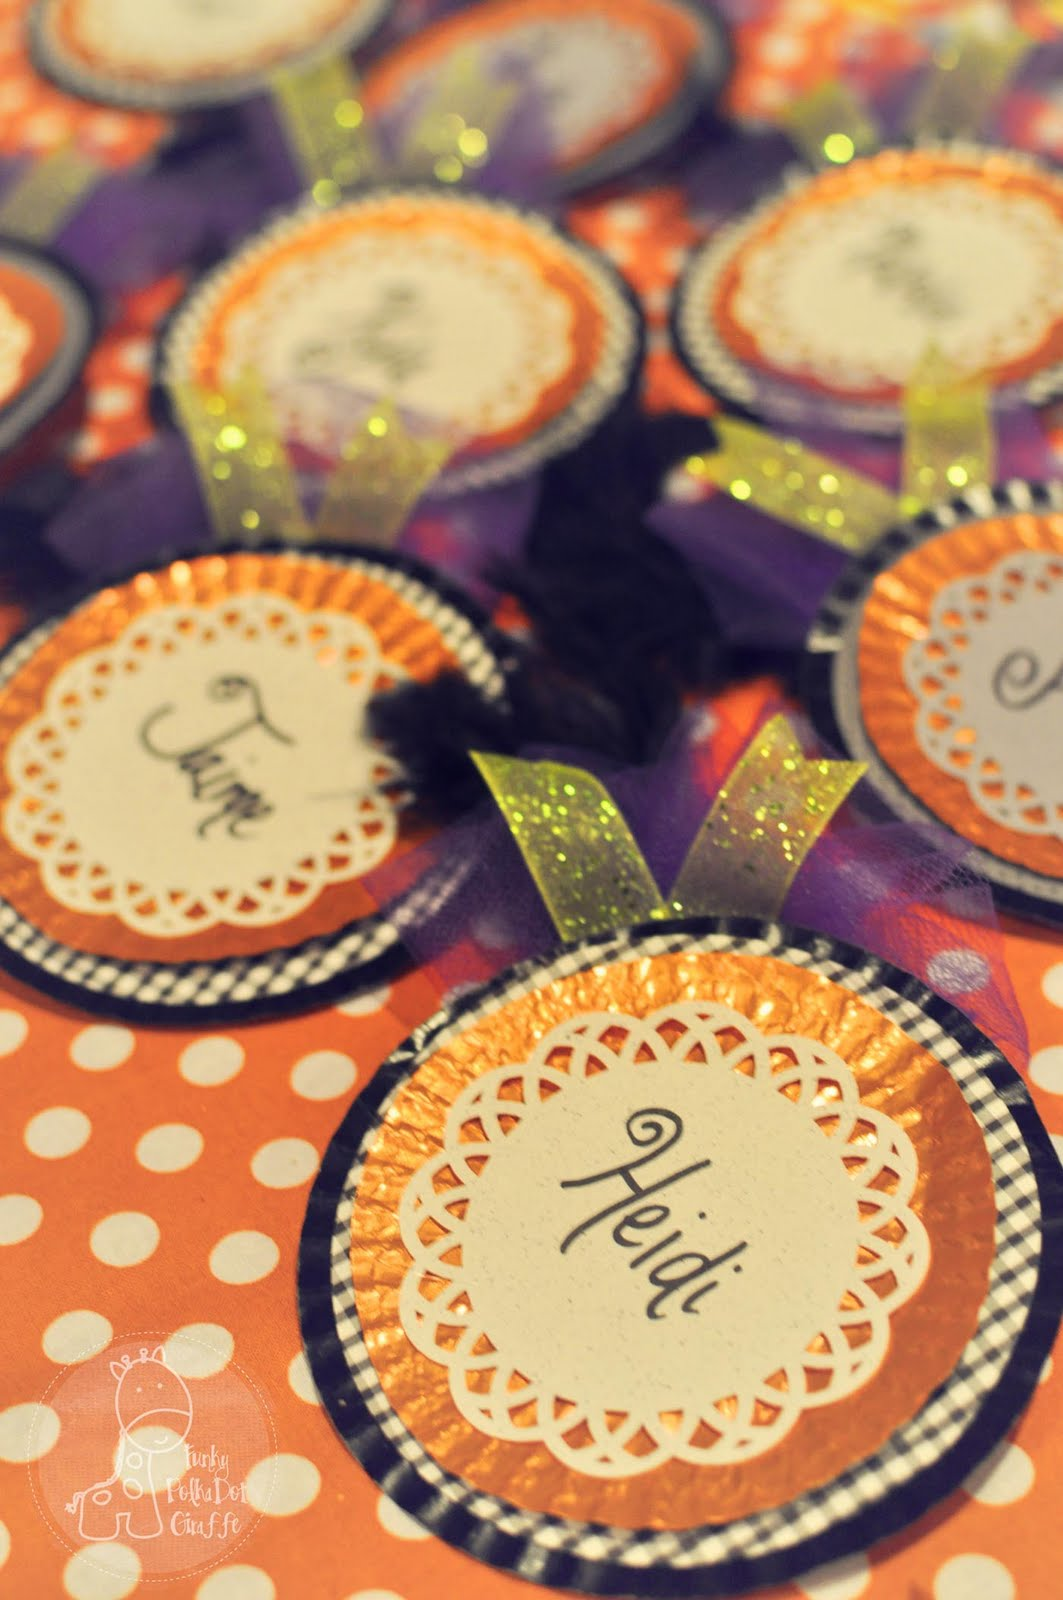 Name tag craft ideas - A Crafty Halloween Party Fancy Shmancy Name Tags